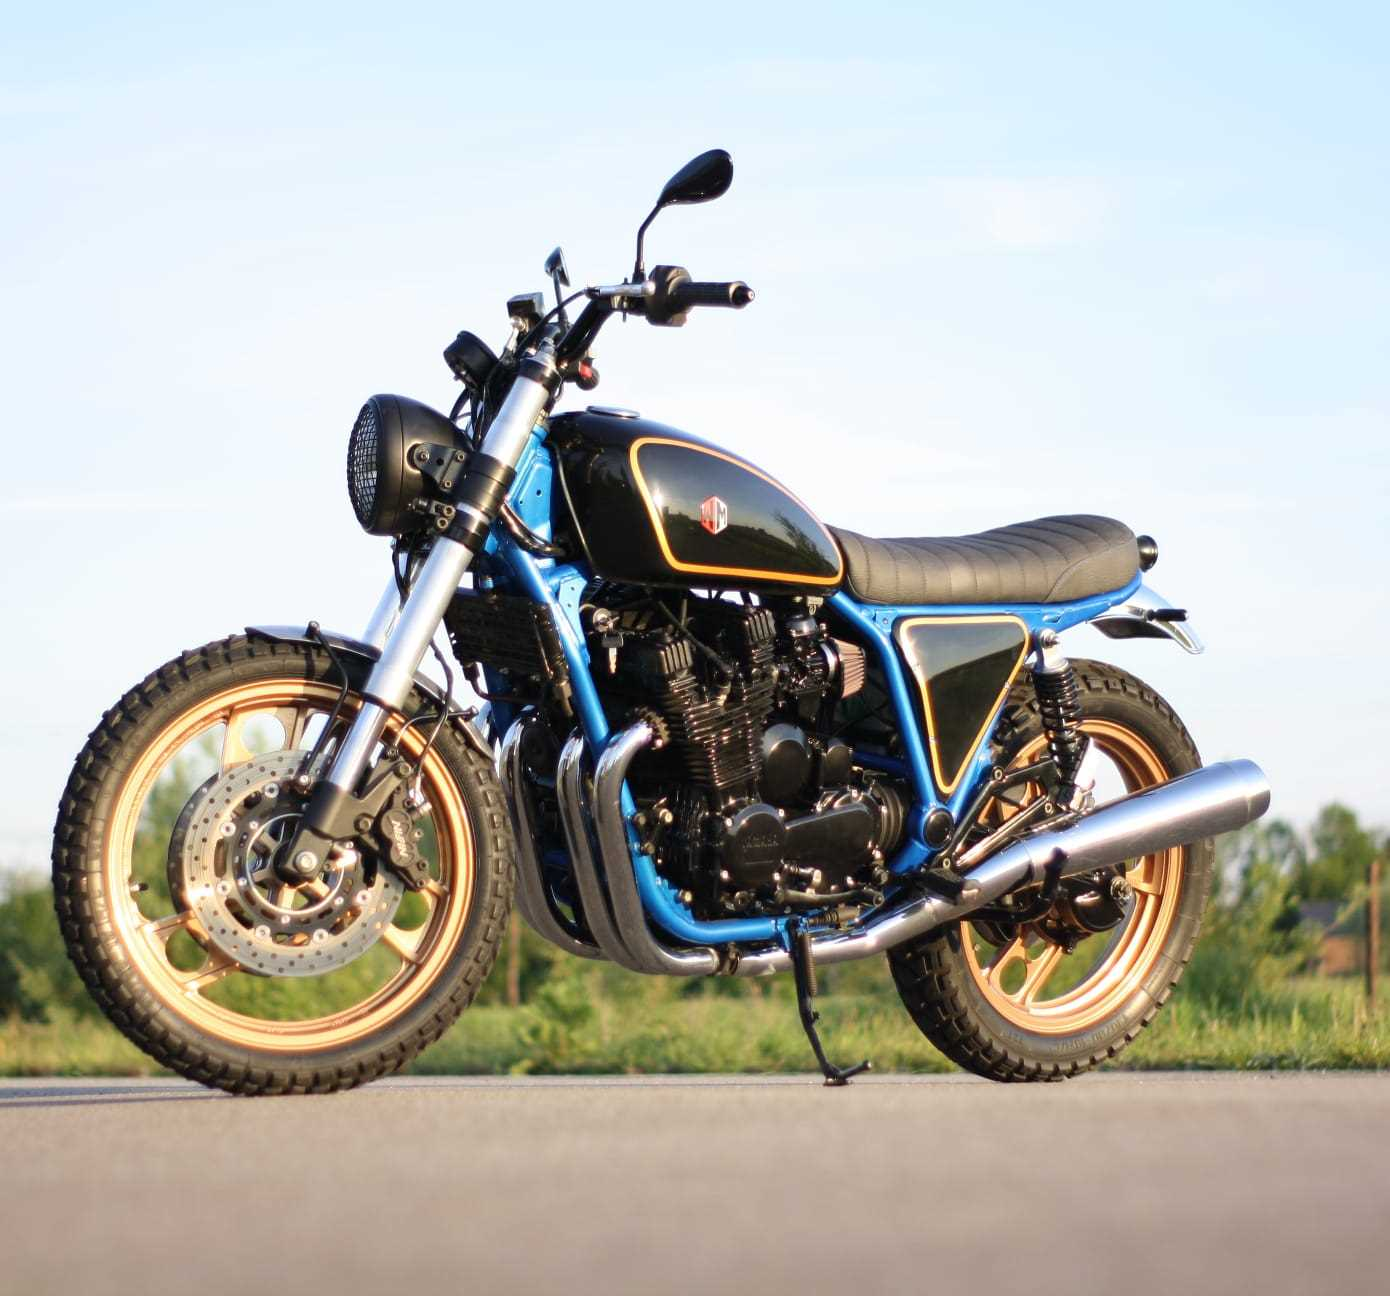 xj900-wimoto-resized